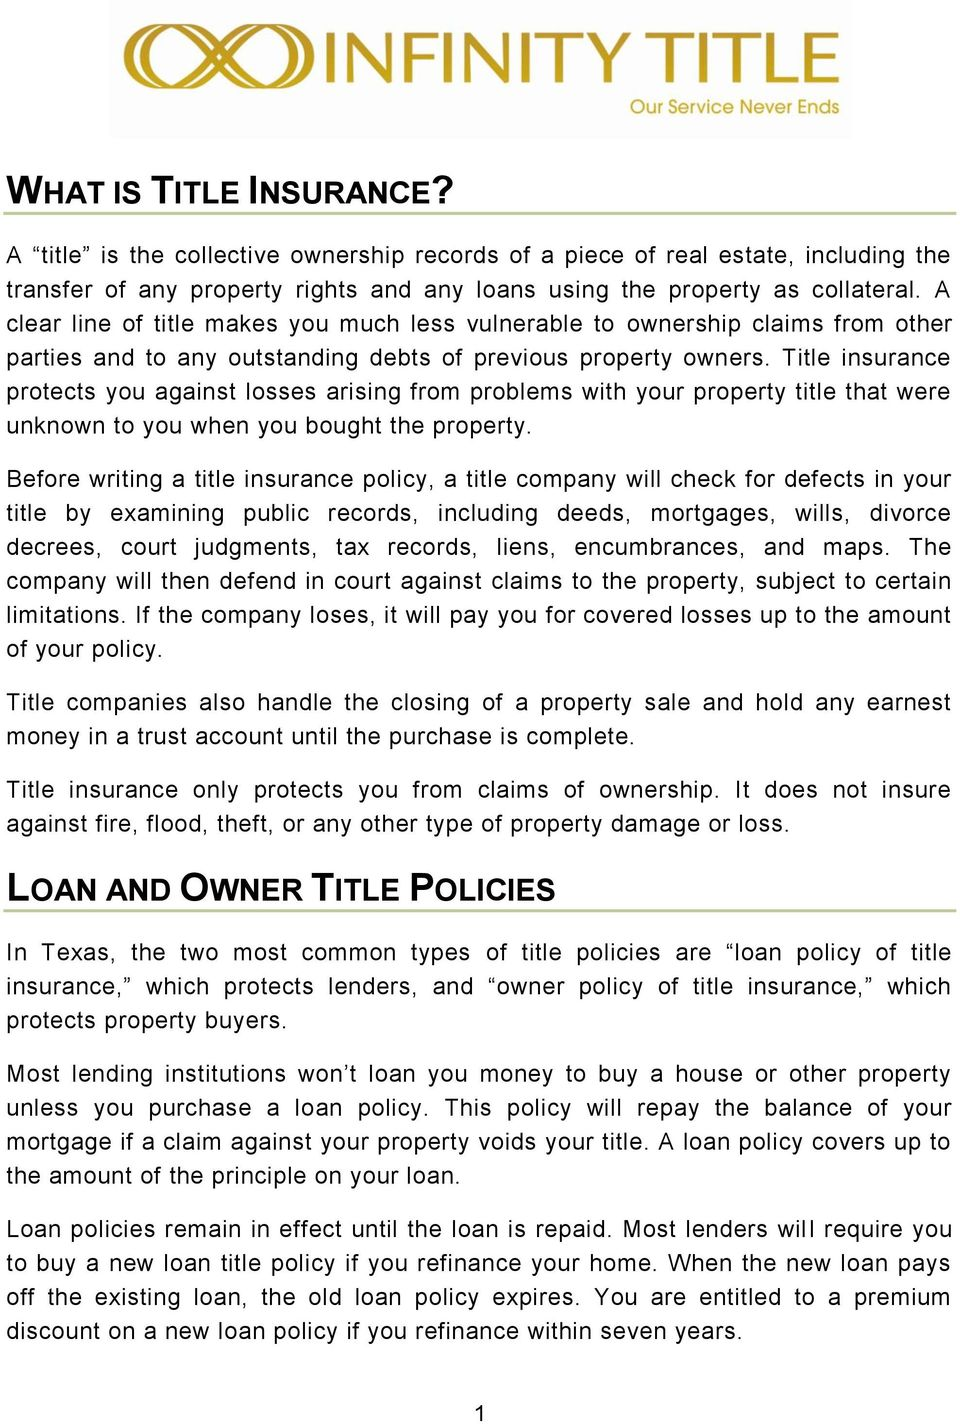 Title insurance protects you against losses arising from problems with your property title that were unknown to you when you bought the property.